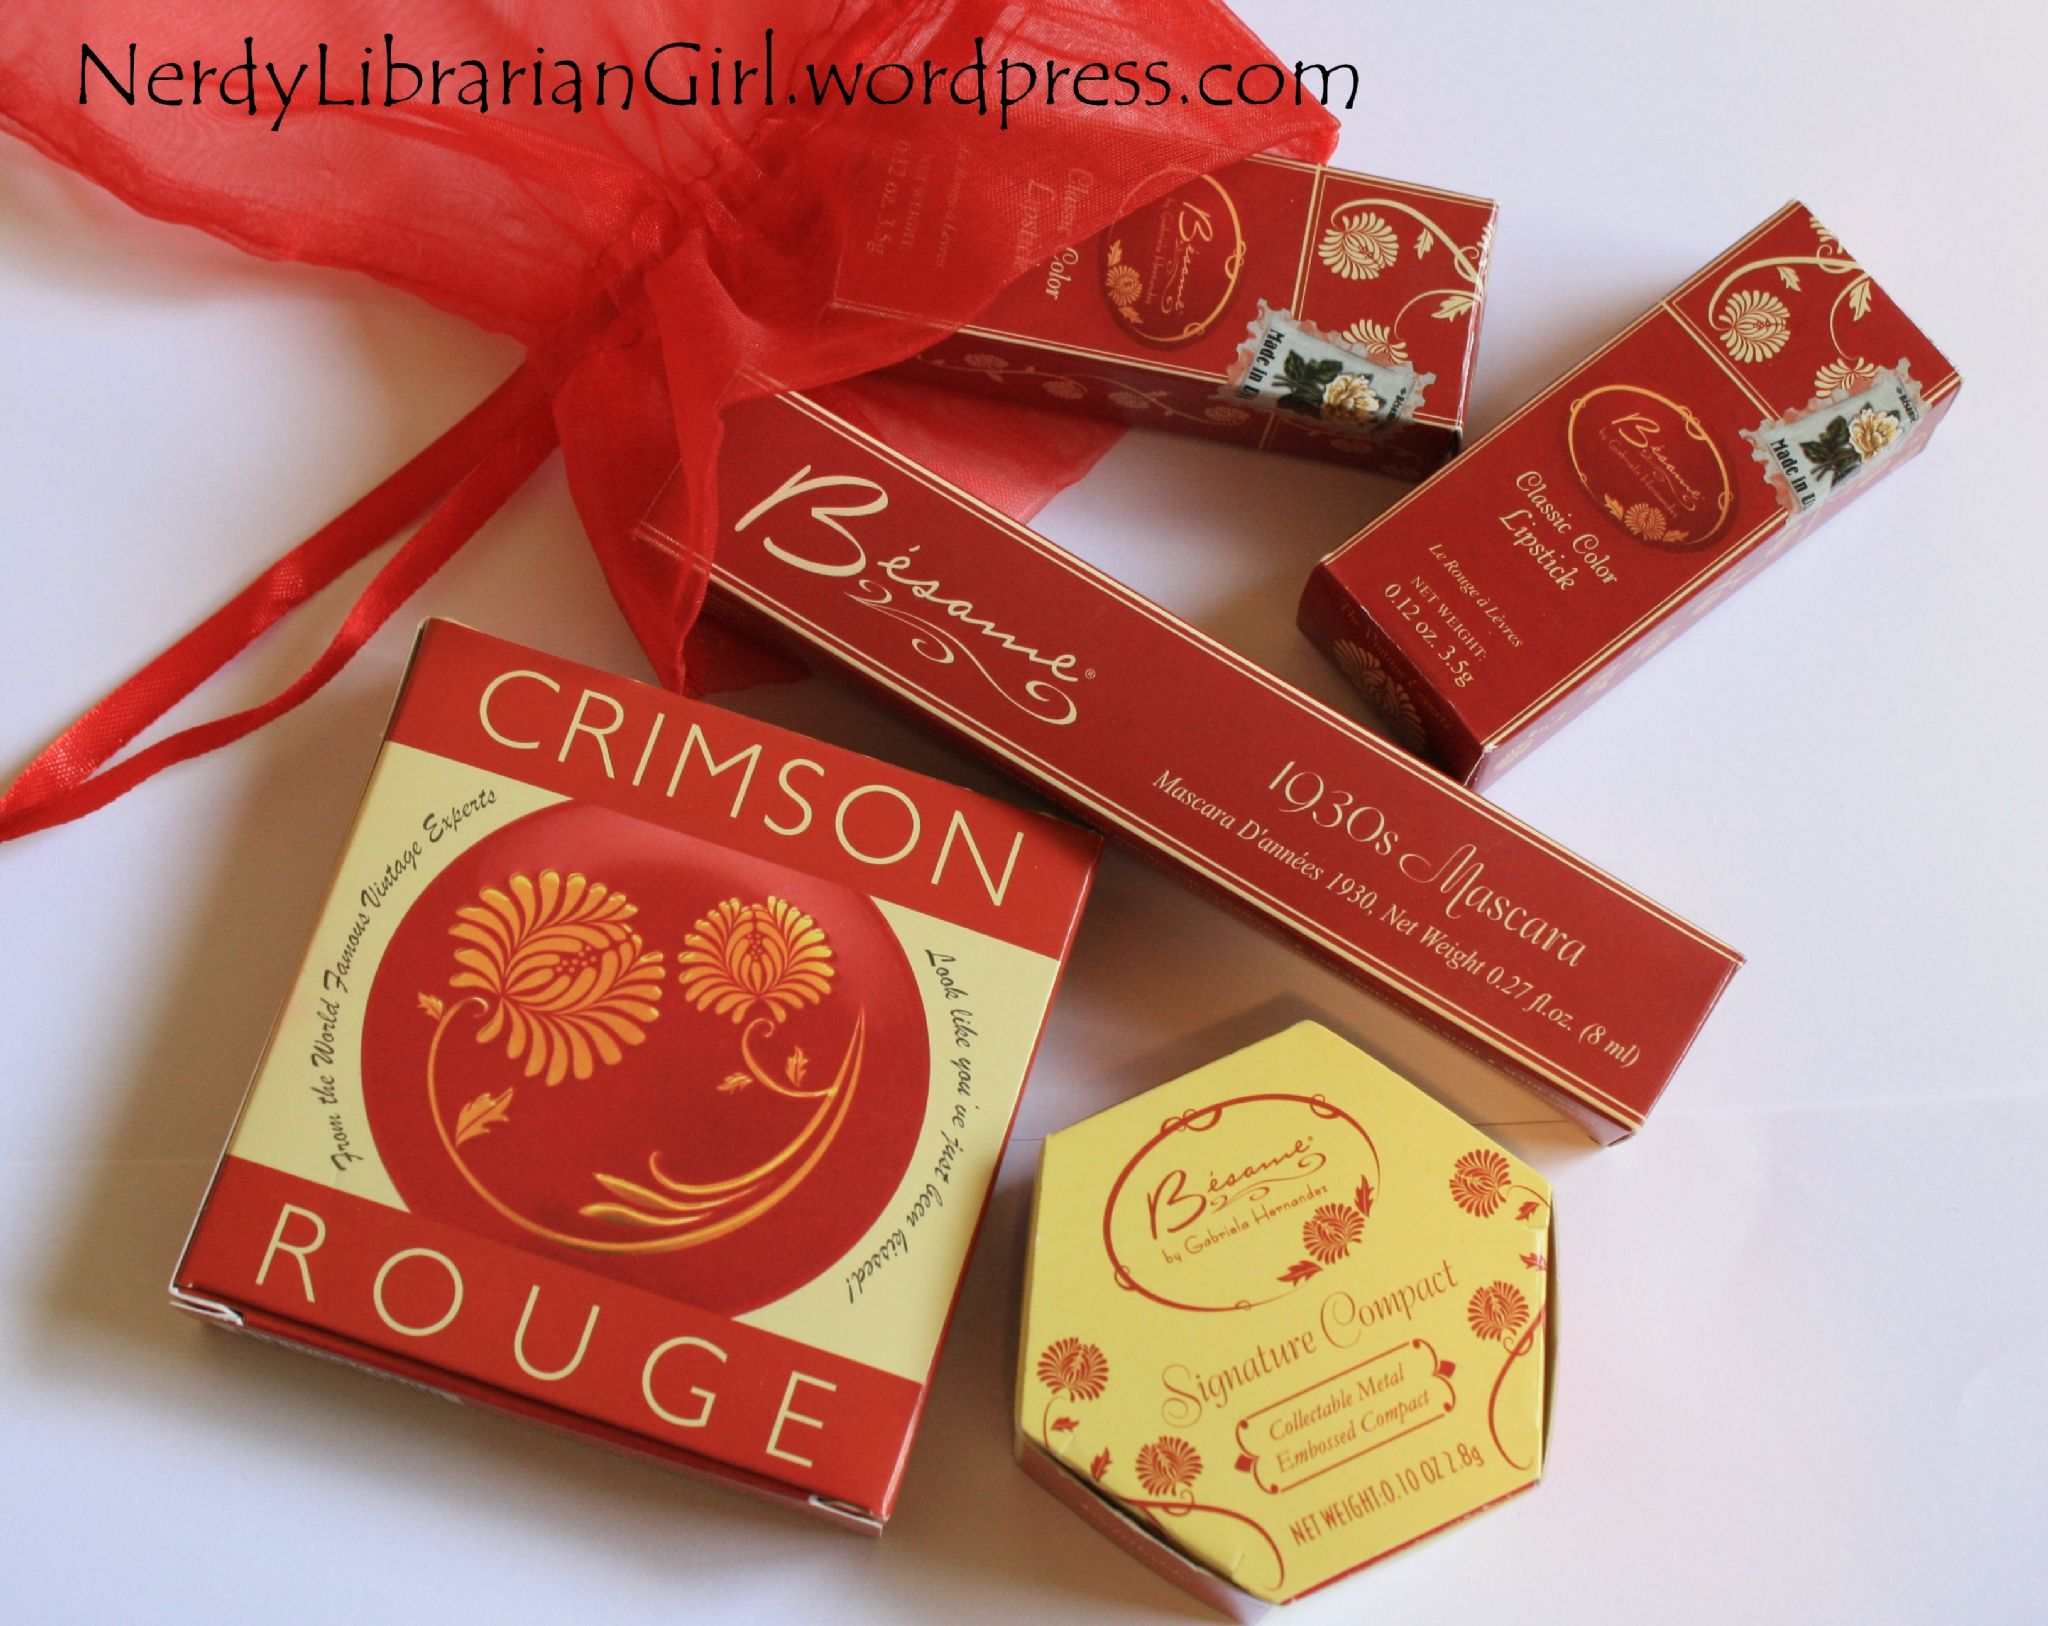 fun size beauty: Besame Crimson Cream Rouge for Lips and